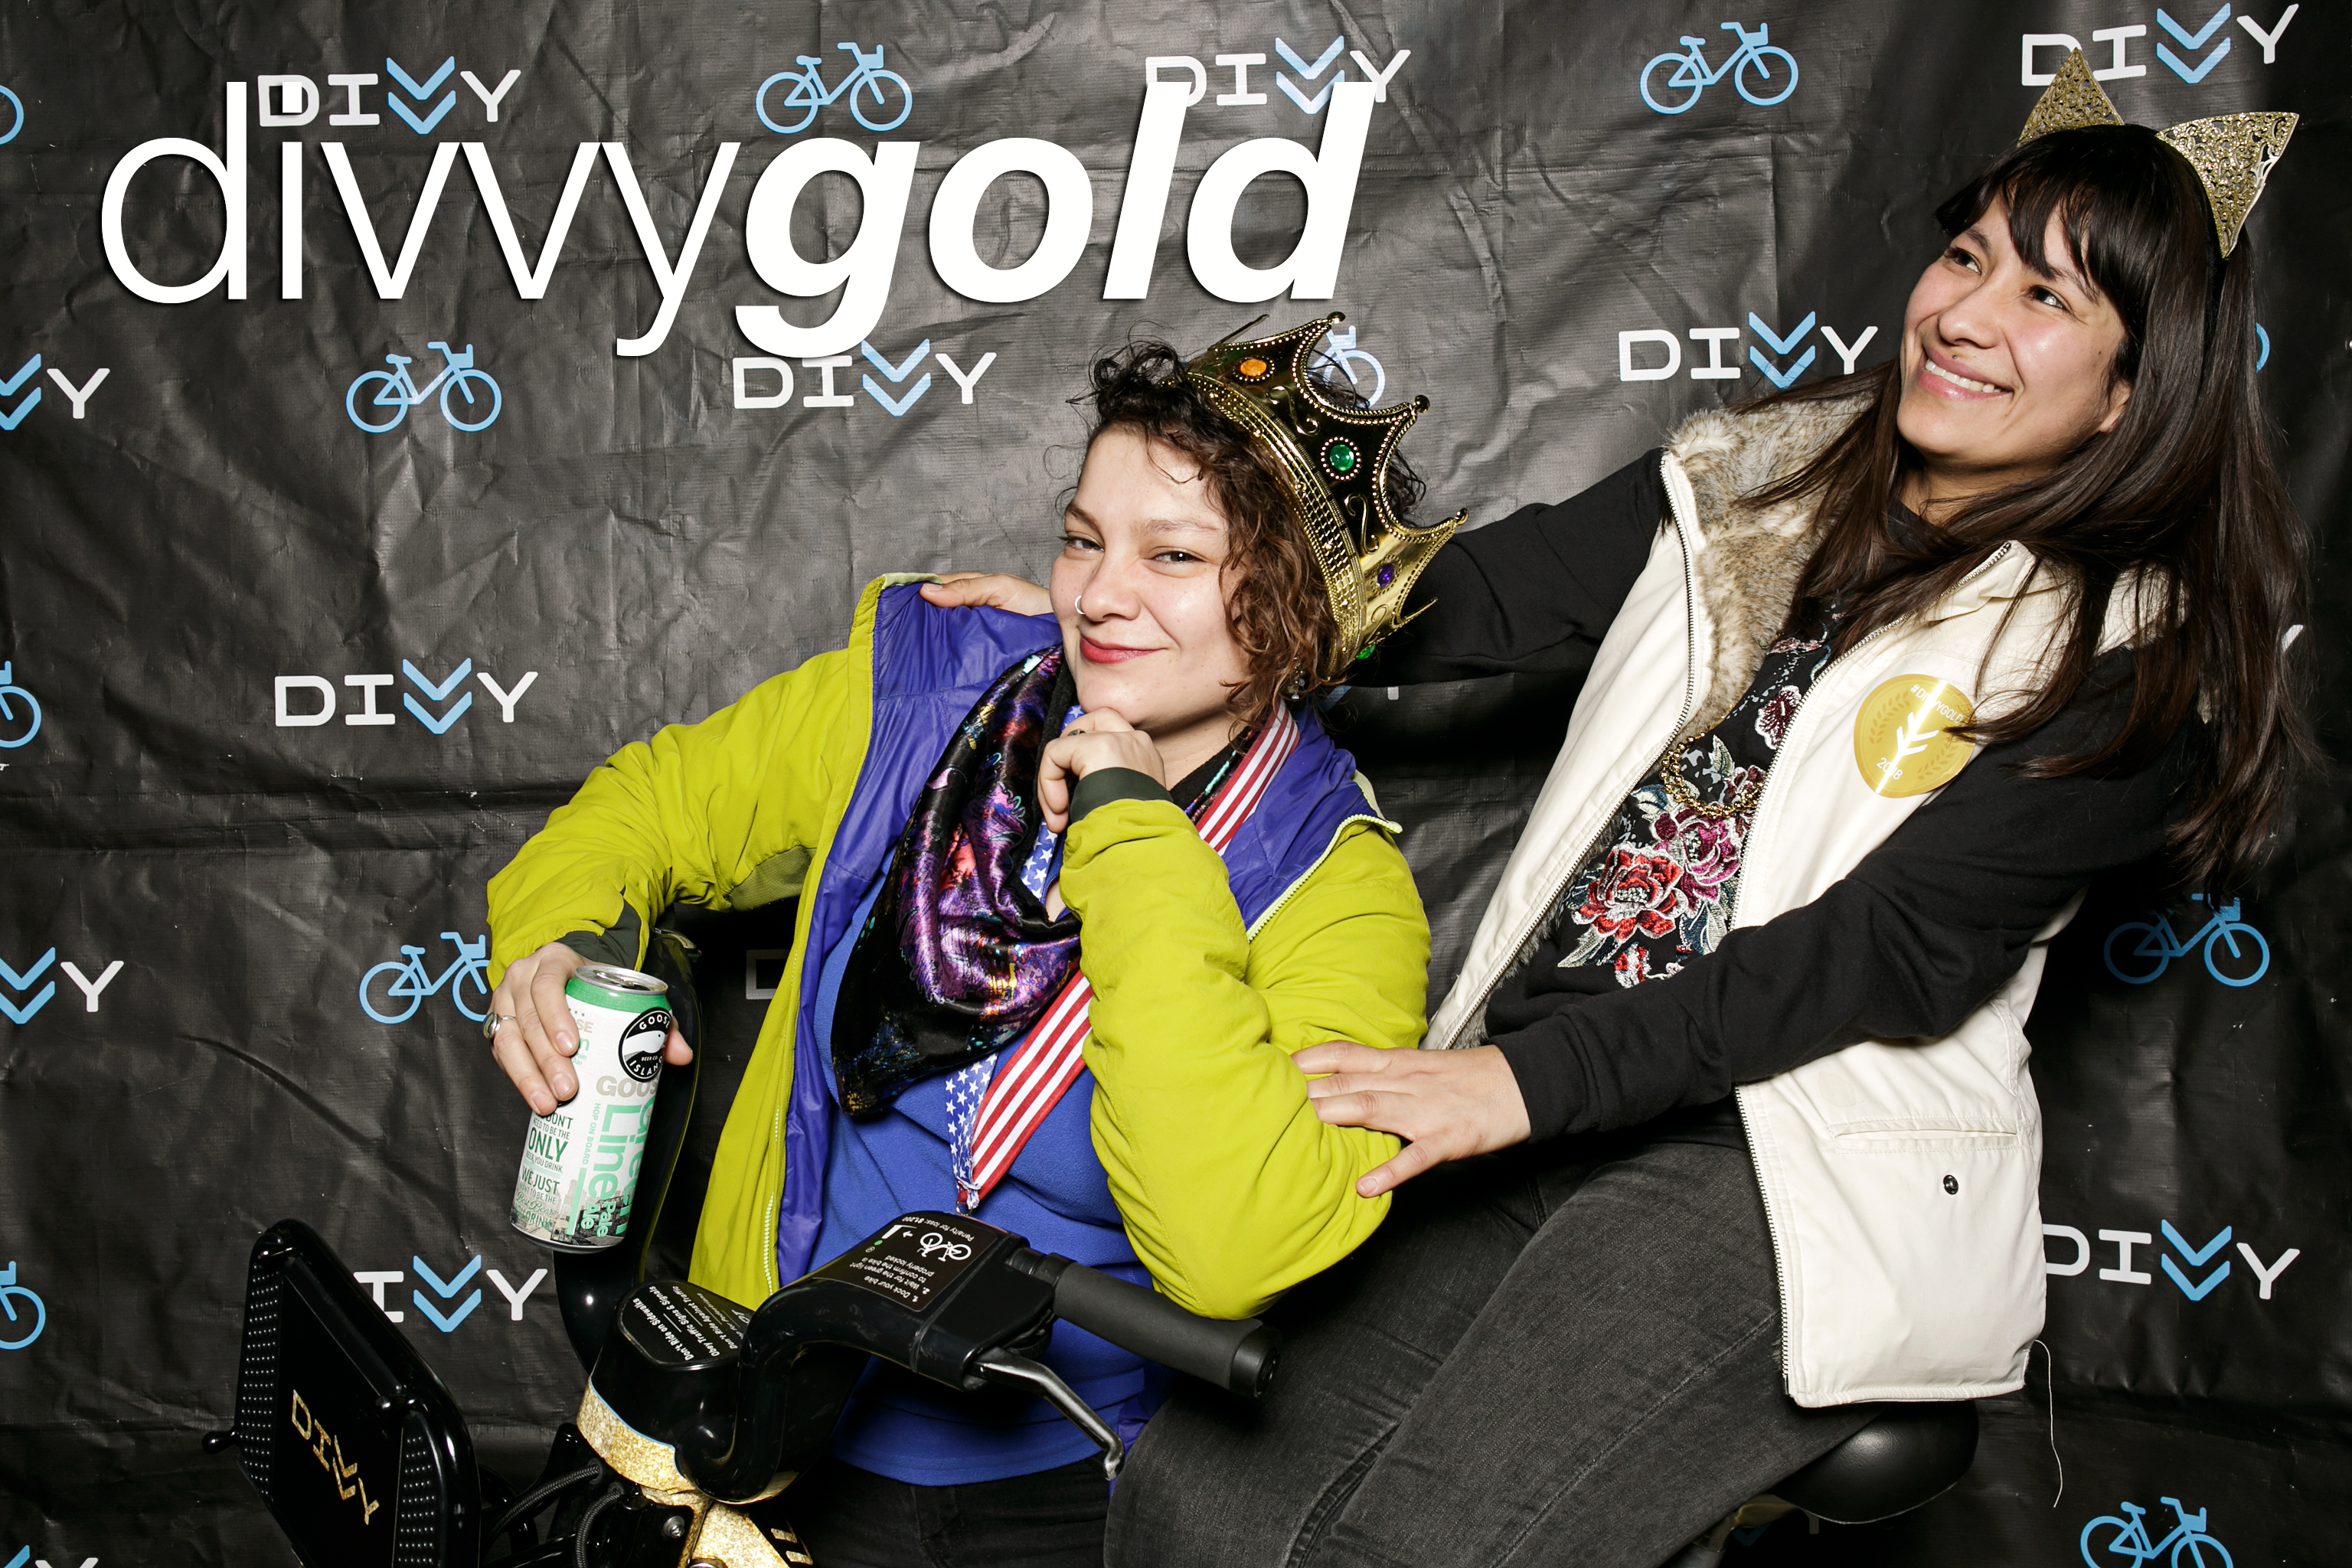 glitterguts photo booth portraits from divvy gold at emporium arcade bar